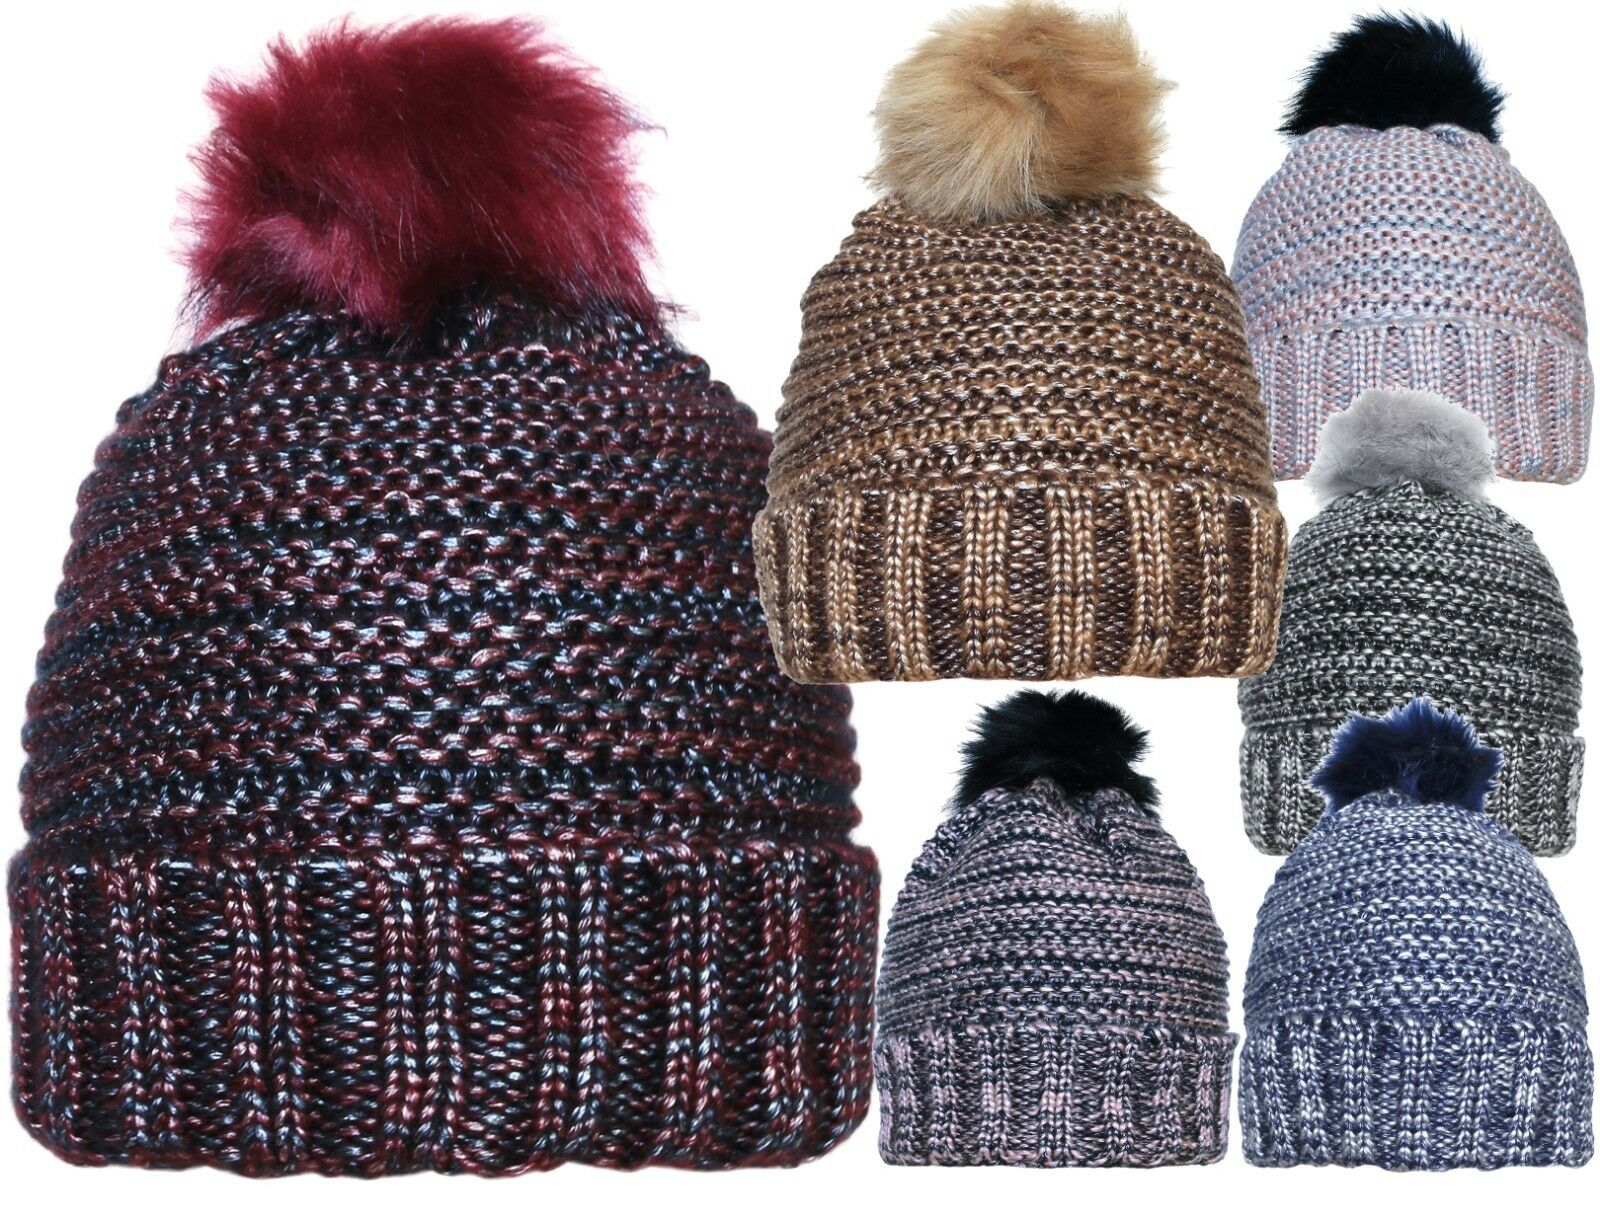 Metallic Look Faux Fur Pom Pom Winter Beanie Hat Clothing, Shoes & Accessories